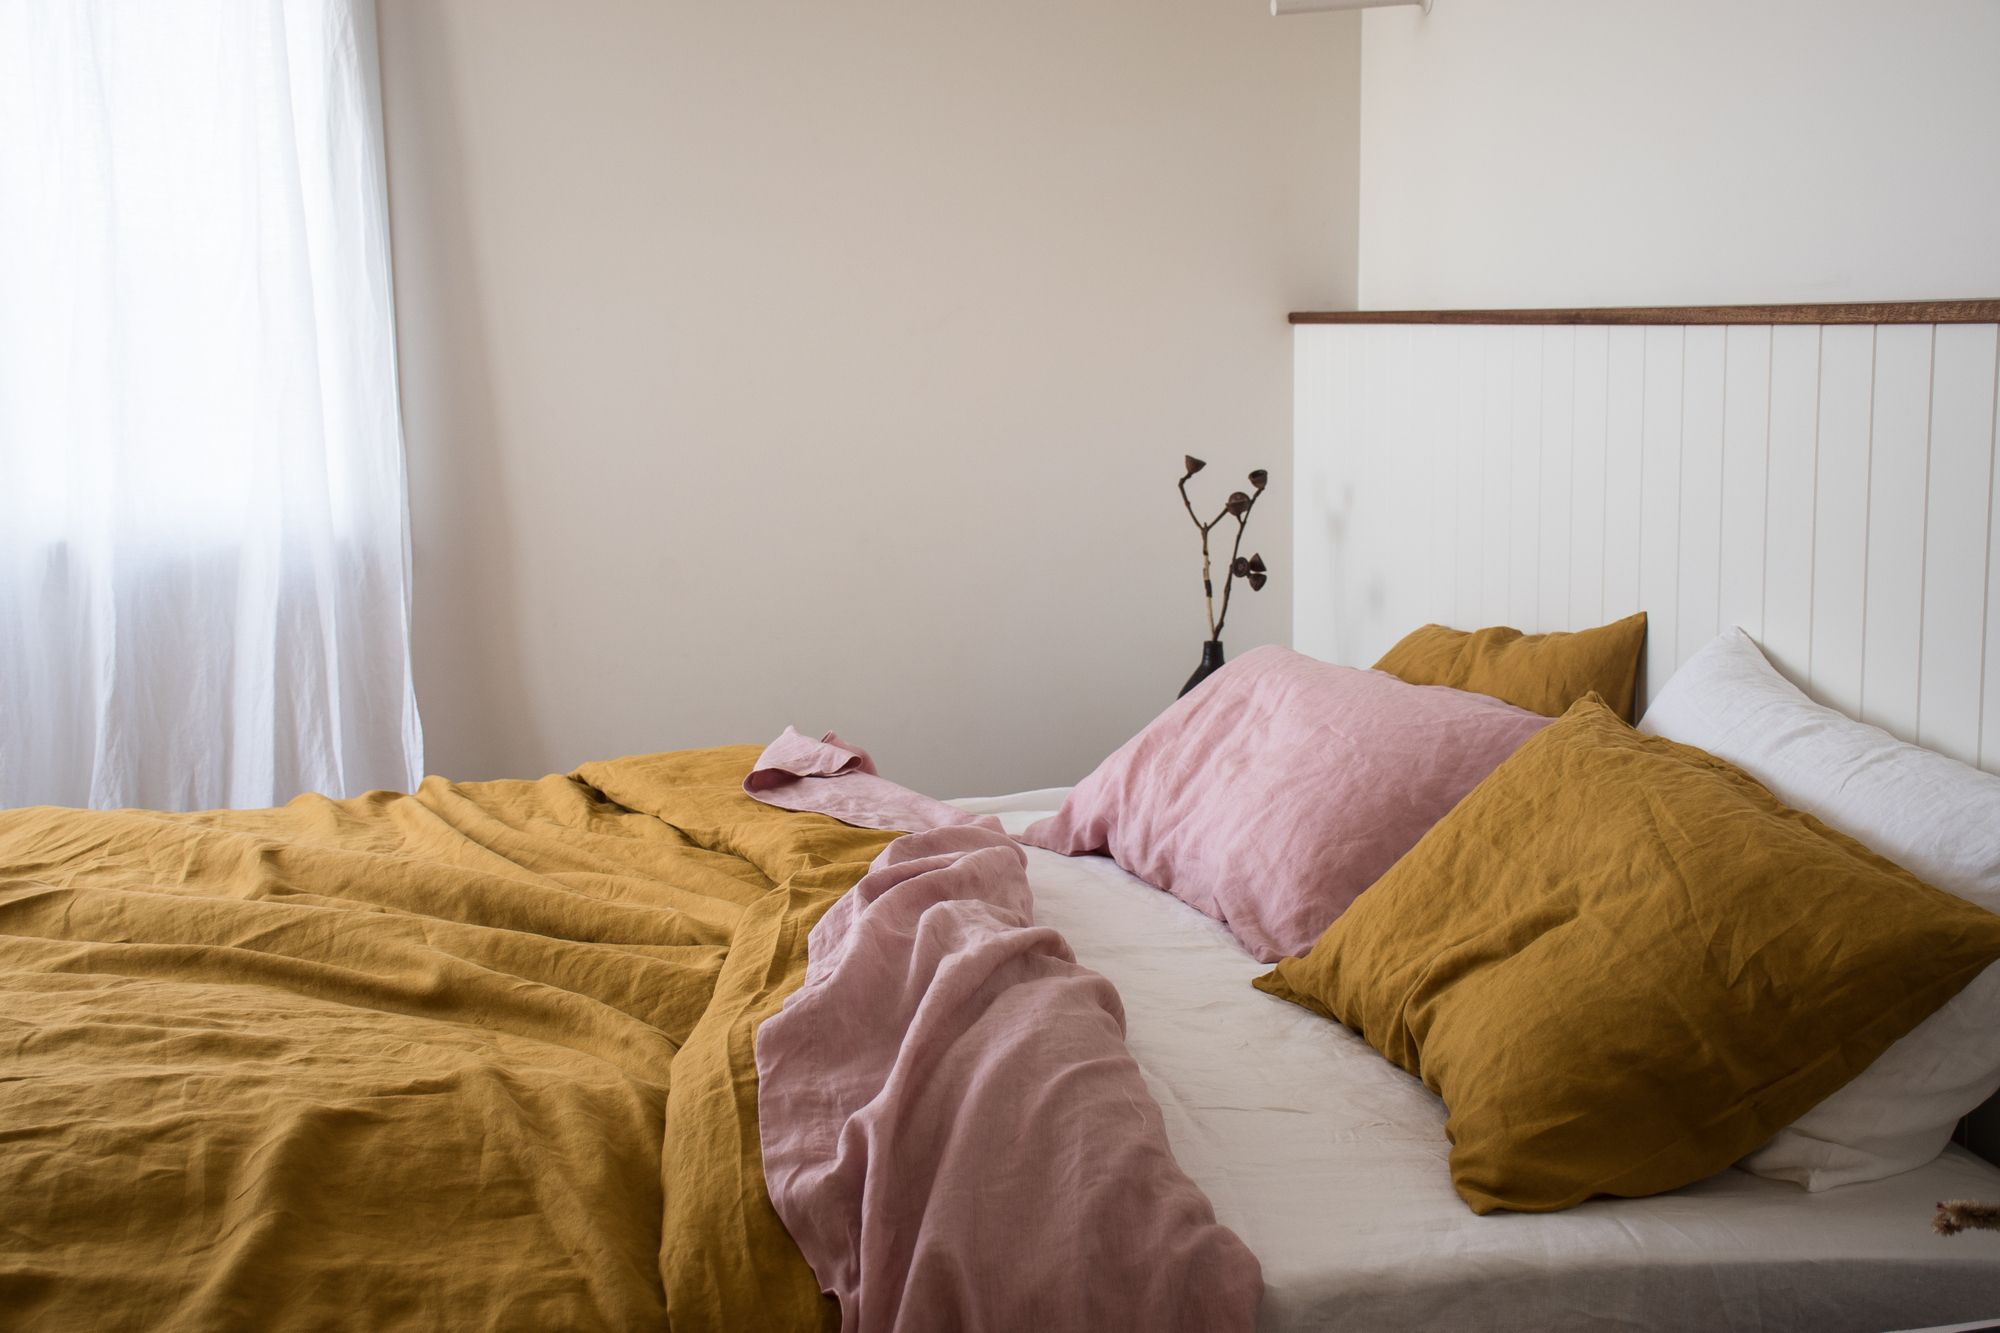 Mustard French Linen In 2020 | Bed Linen Sets, Diy Sofa With Regard To French Seamed Sectional Sofas Oblong Mustard (View 13 of 15)